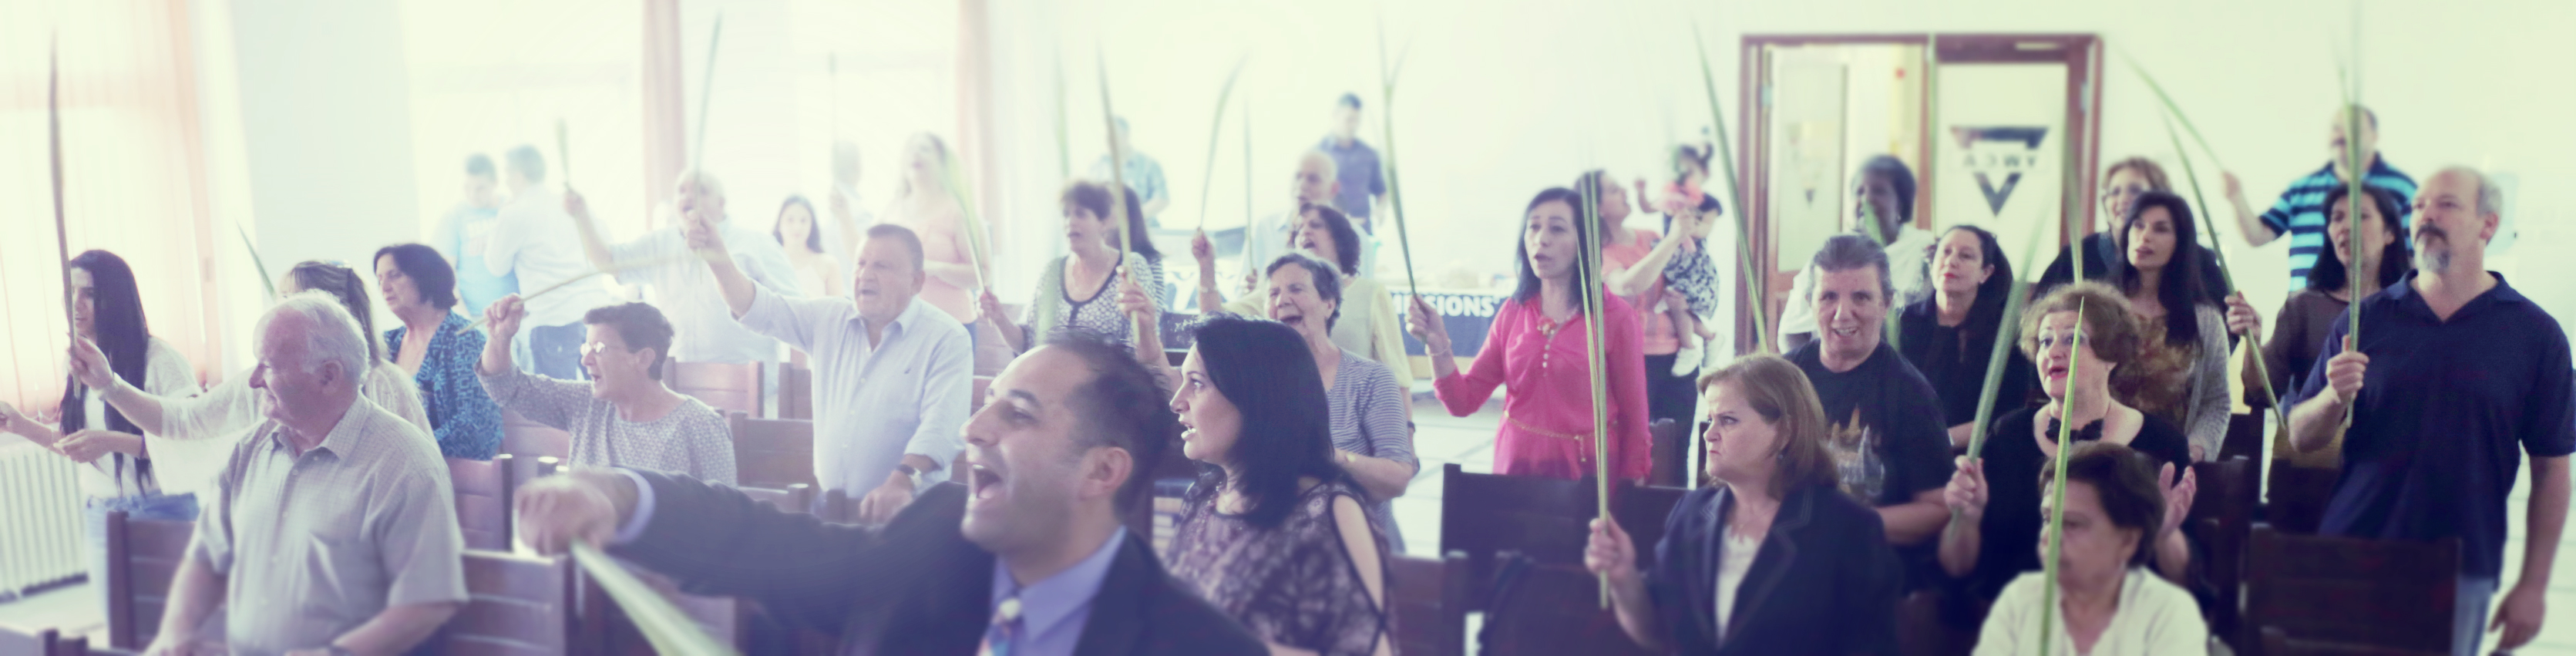 A group of Calvary Church members singing during a worship service.